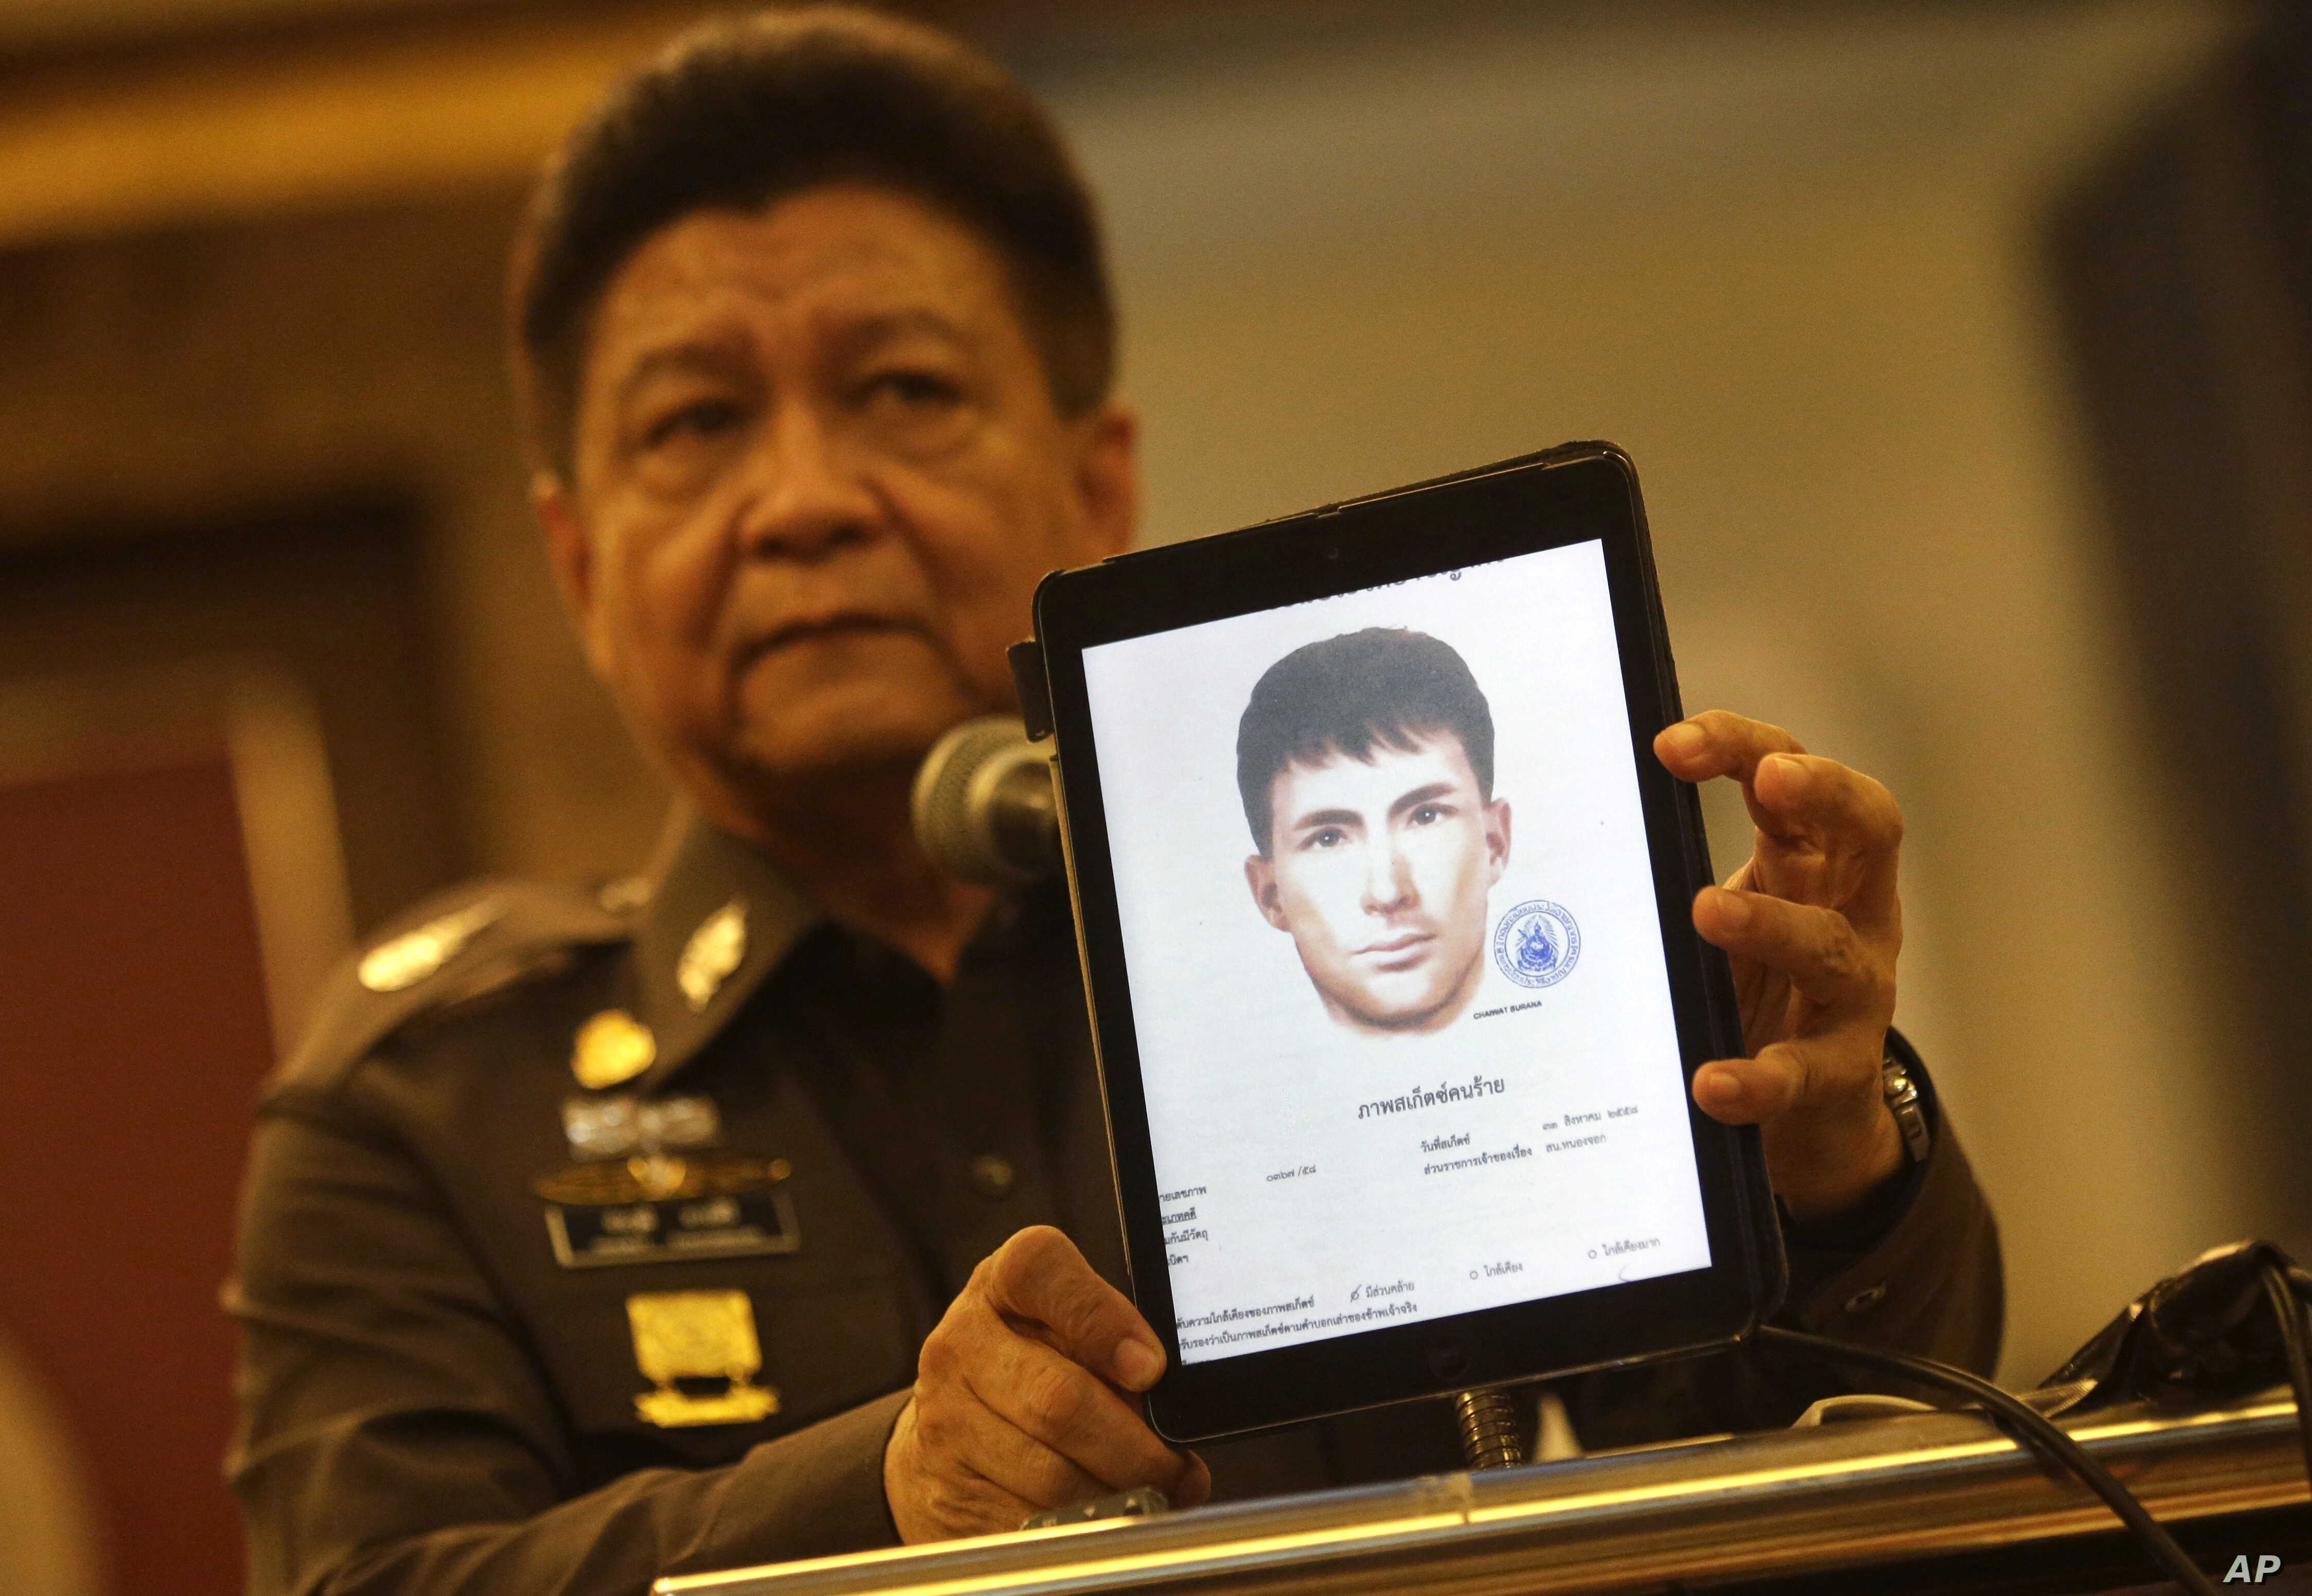 Police spokesman Lt. Gen. Prawuth Thavornsiri shows a photo of one of three men Thai authorities have issued new arrest warrants for in connection with the bombing case, in Bangkok, Thailand, Sept. 1, 2015.